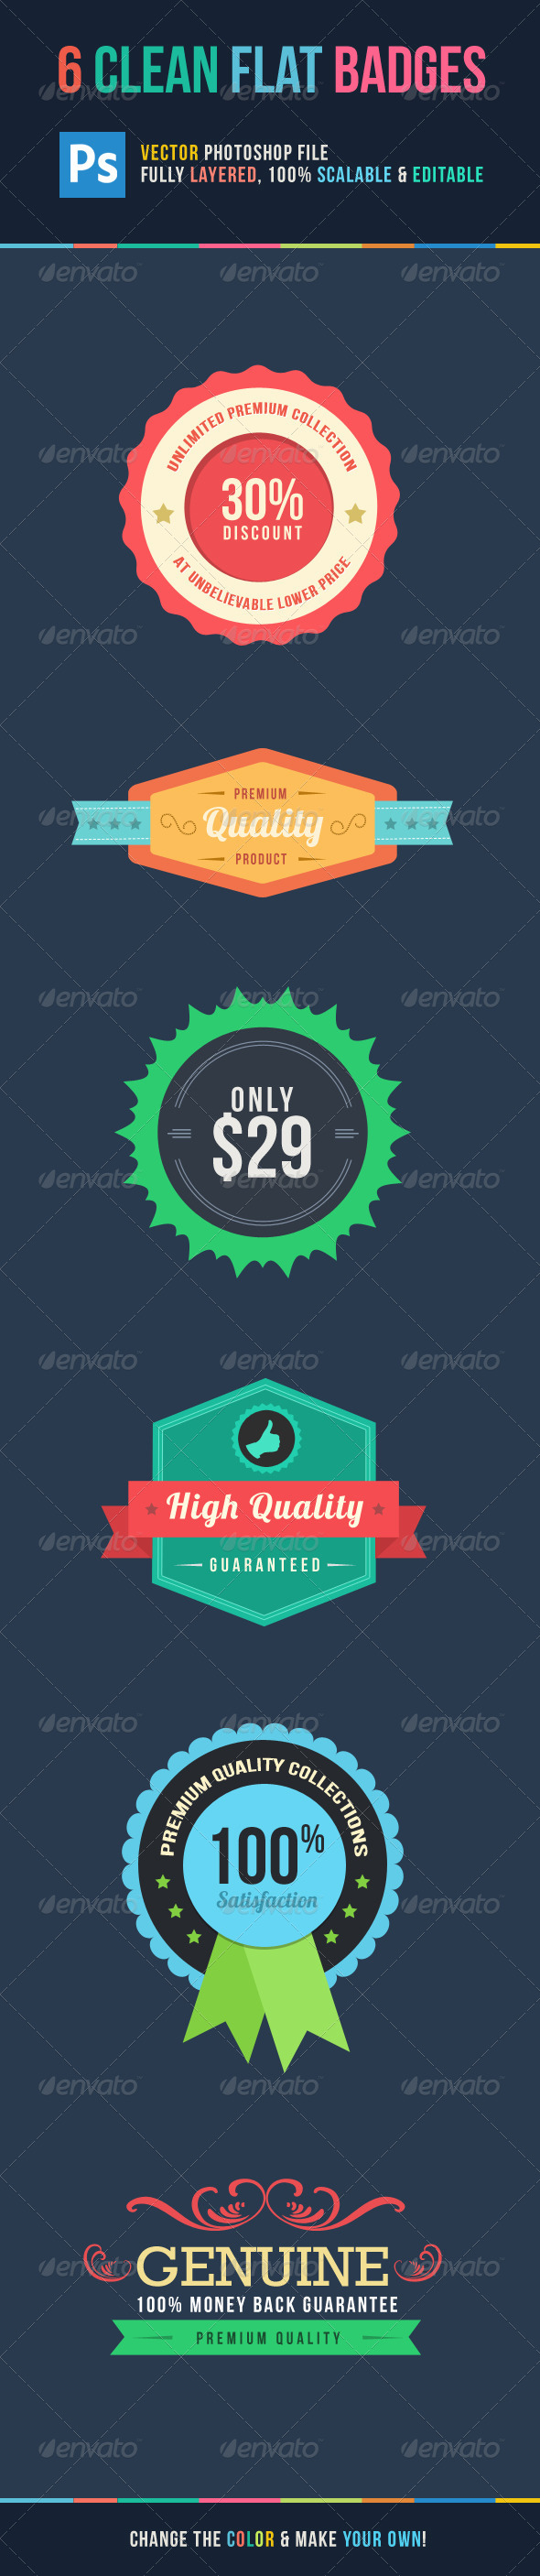 GraphicRiver 6 Clean Flat Badges 5532729